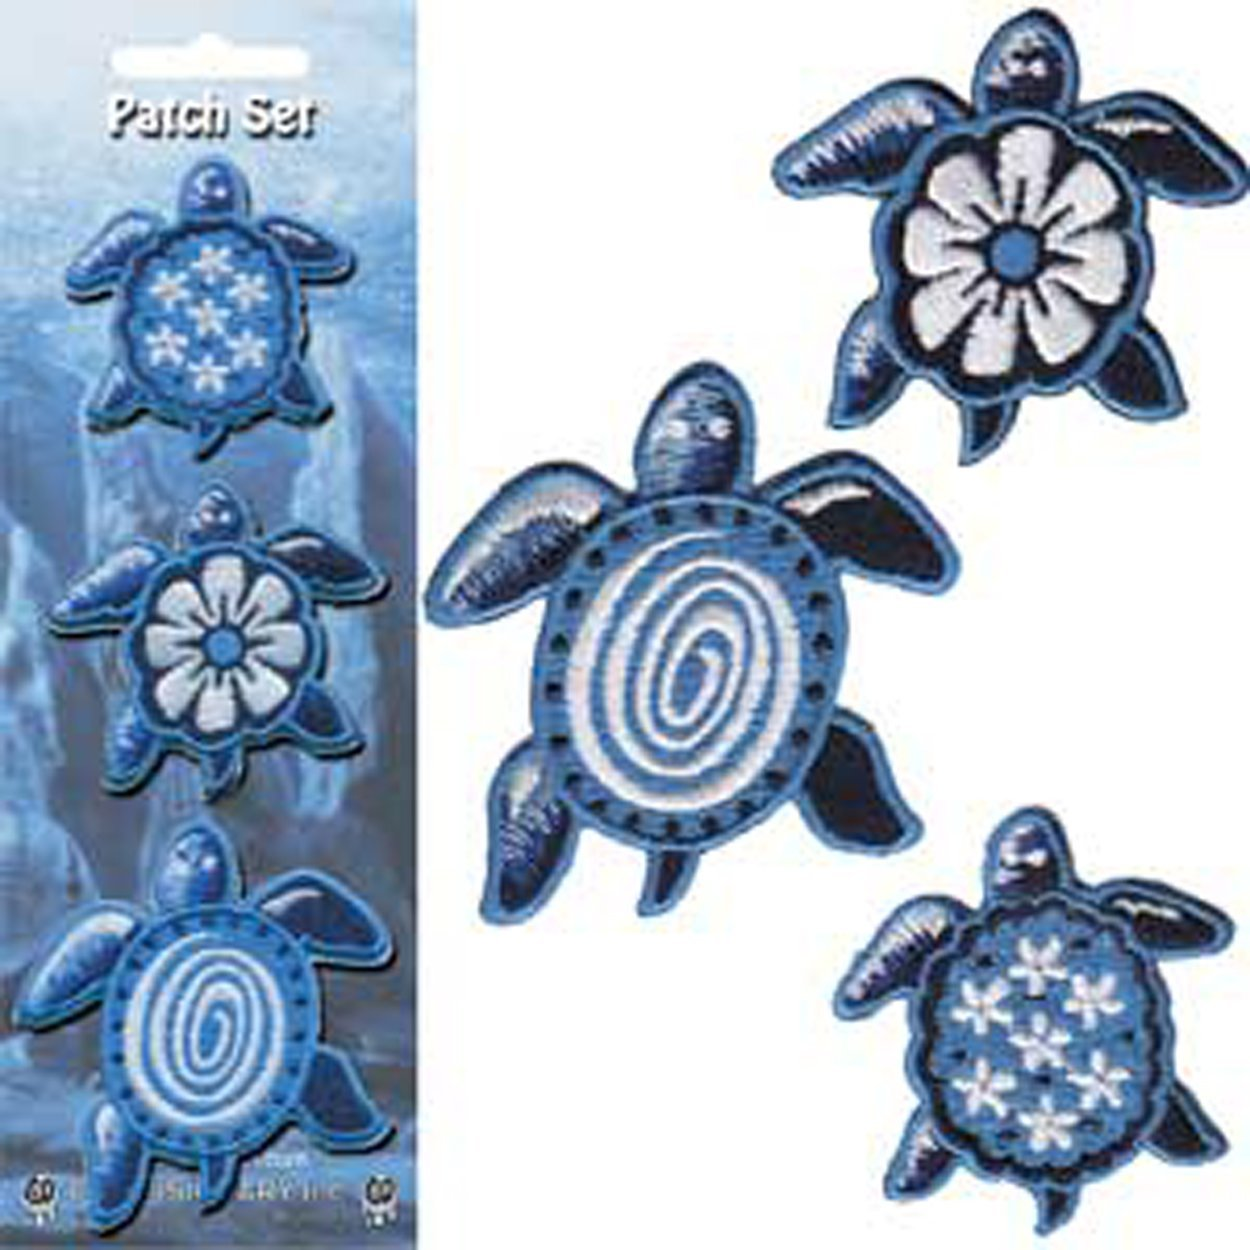 Patch - Animals - Blue Turtles Iron On Gifts New Licensed p-3673-s